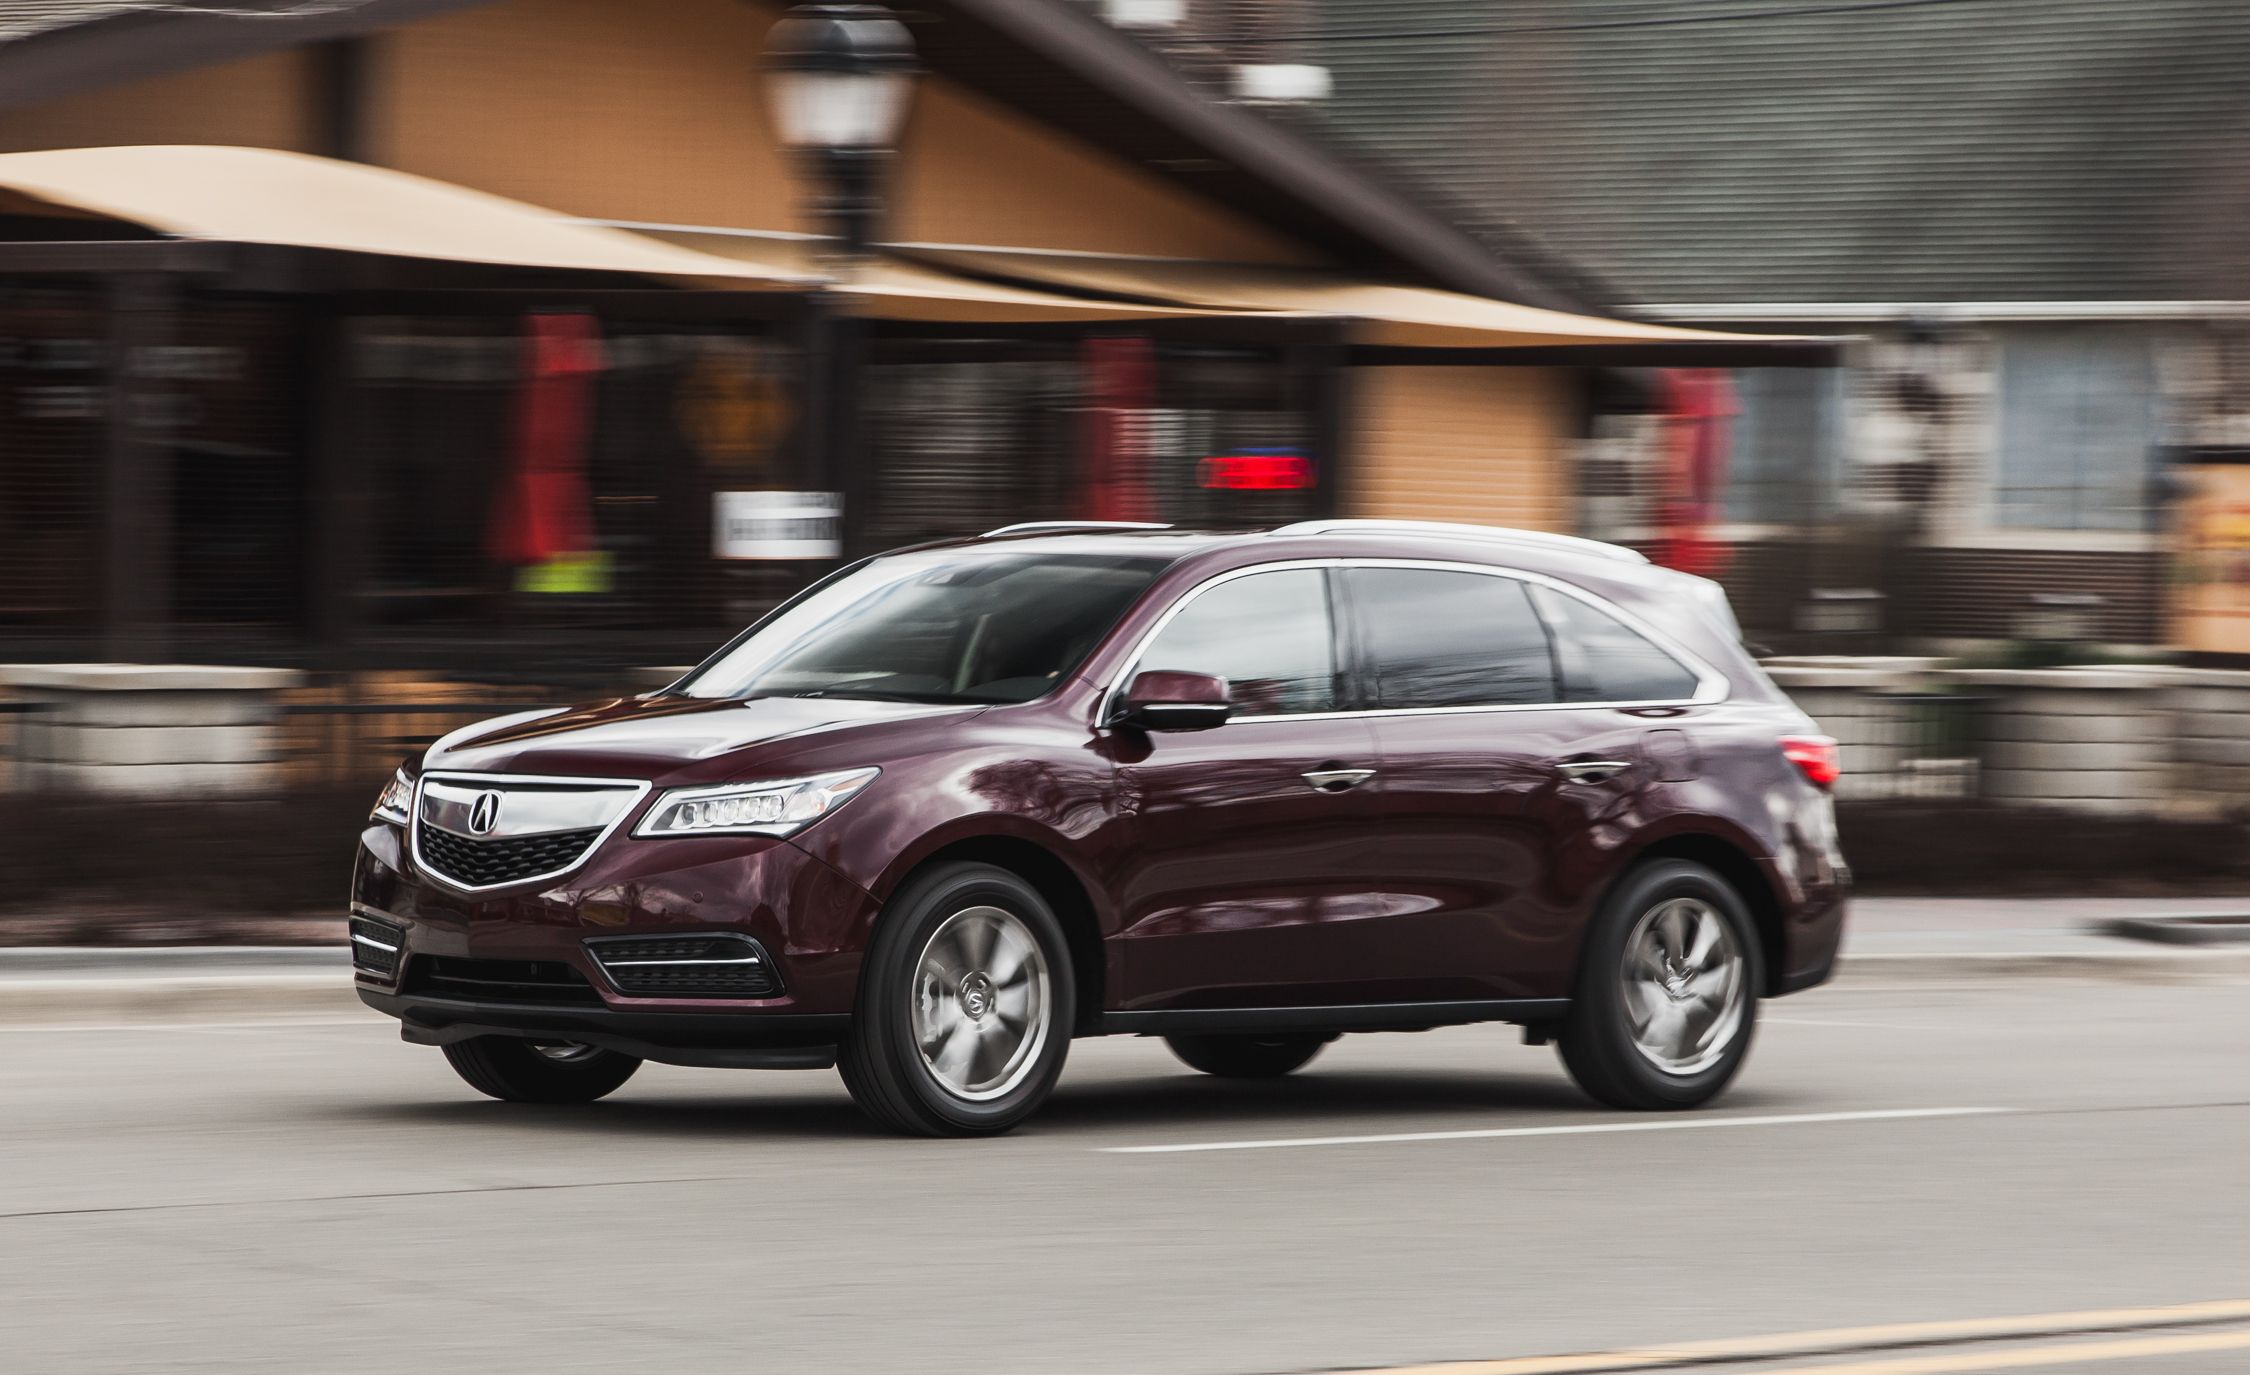 2016 Acura MDX 9 Speed Automatic Test Review